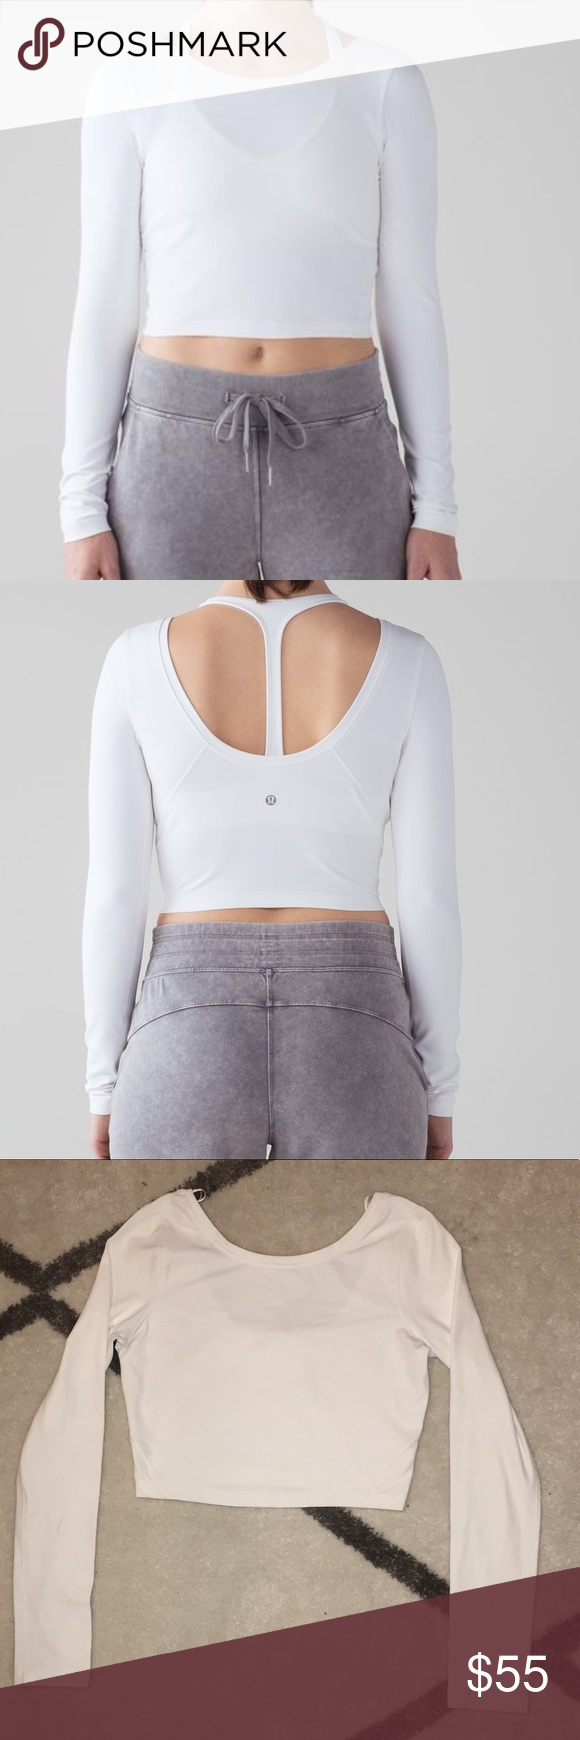 0dd3d1811ac Lululemon Arise Long Sleeve Crop Top White 6 Absolutely stunning white cropped  long sleeve. Size 6. Never worn!!! Took off tags but never wore cuz it was  ...